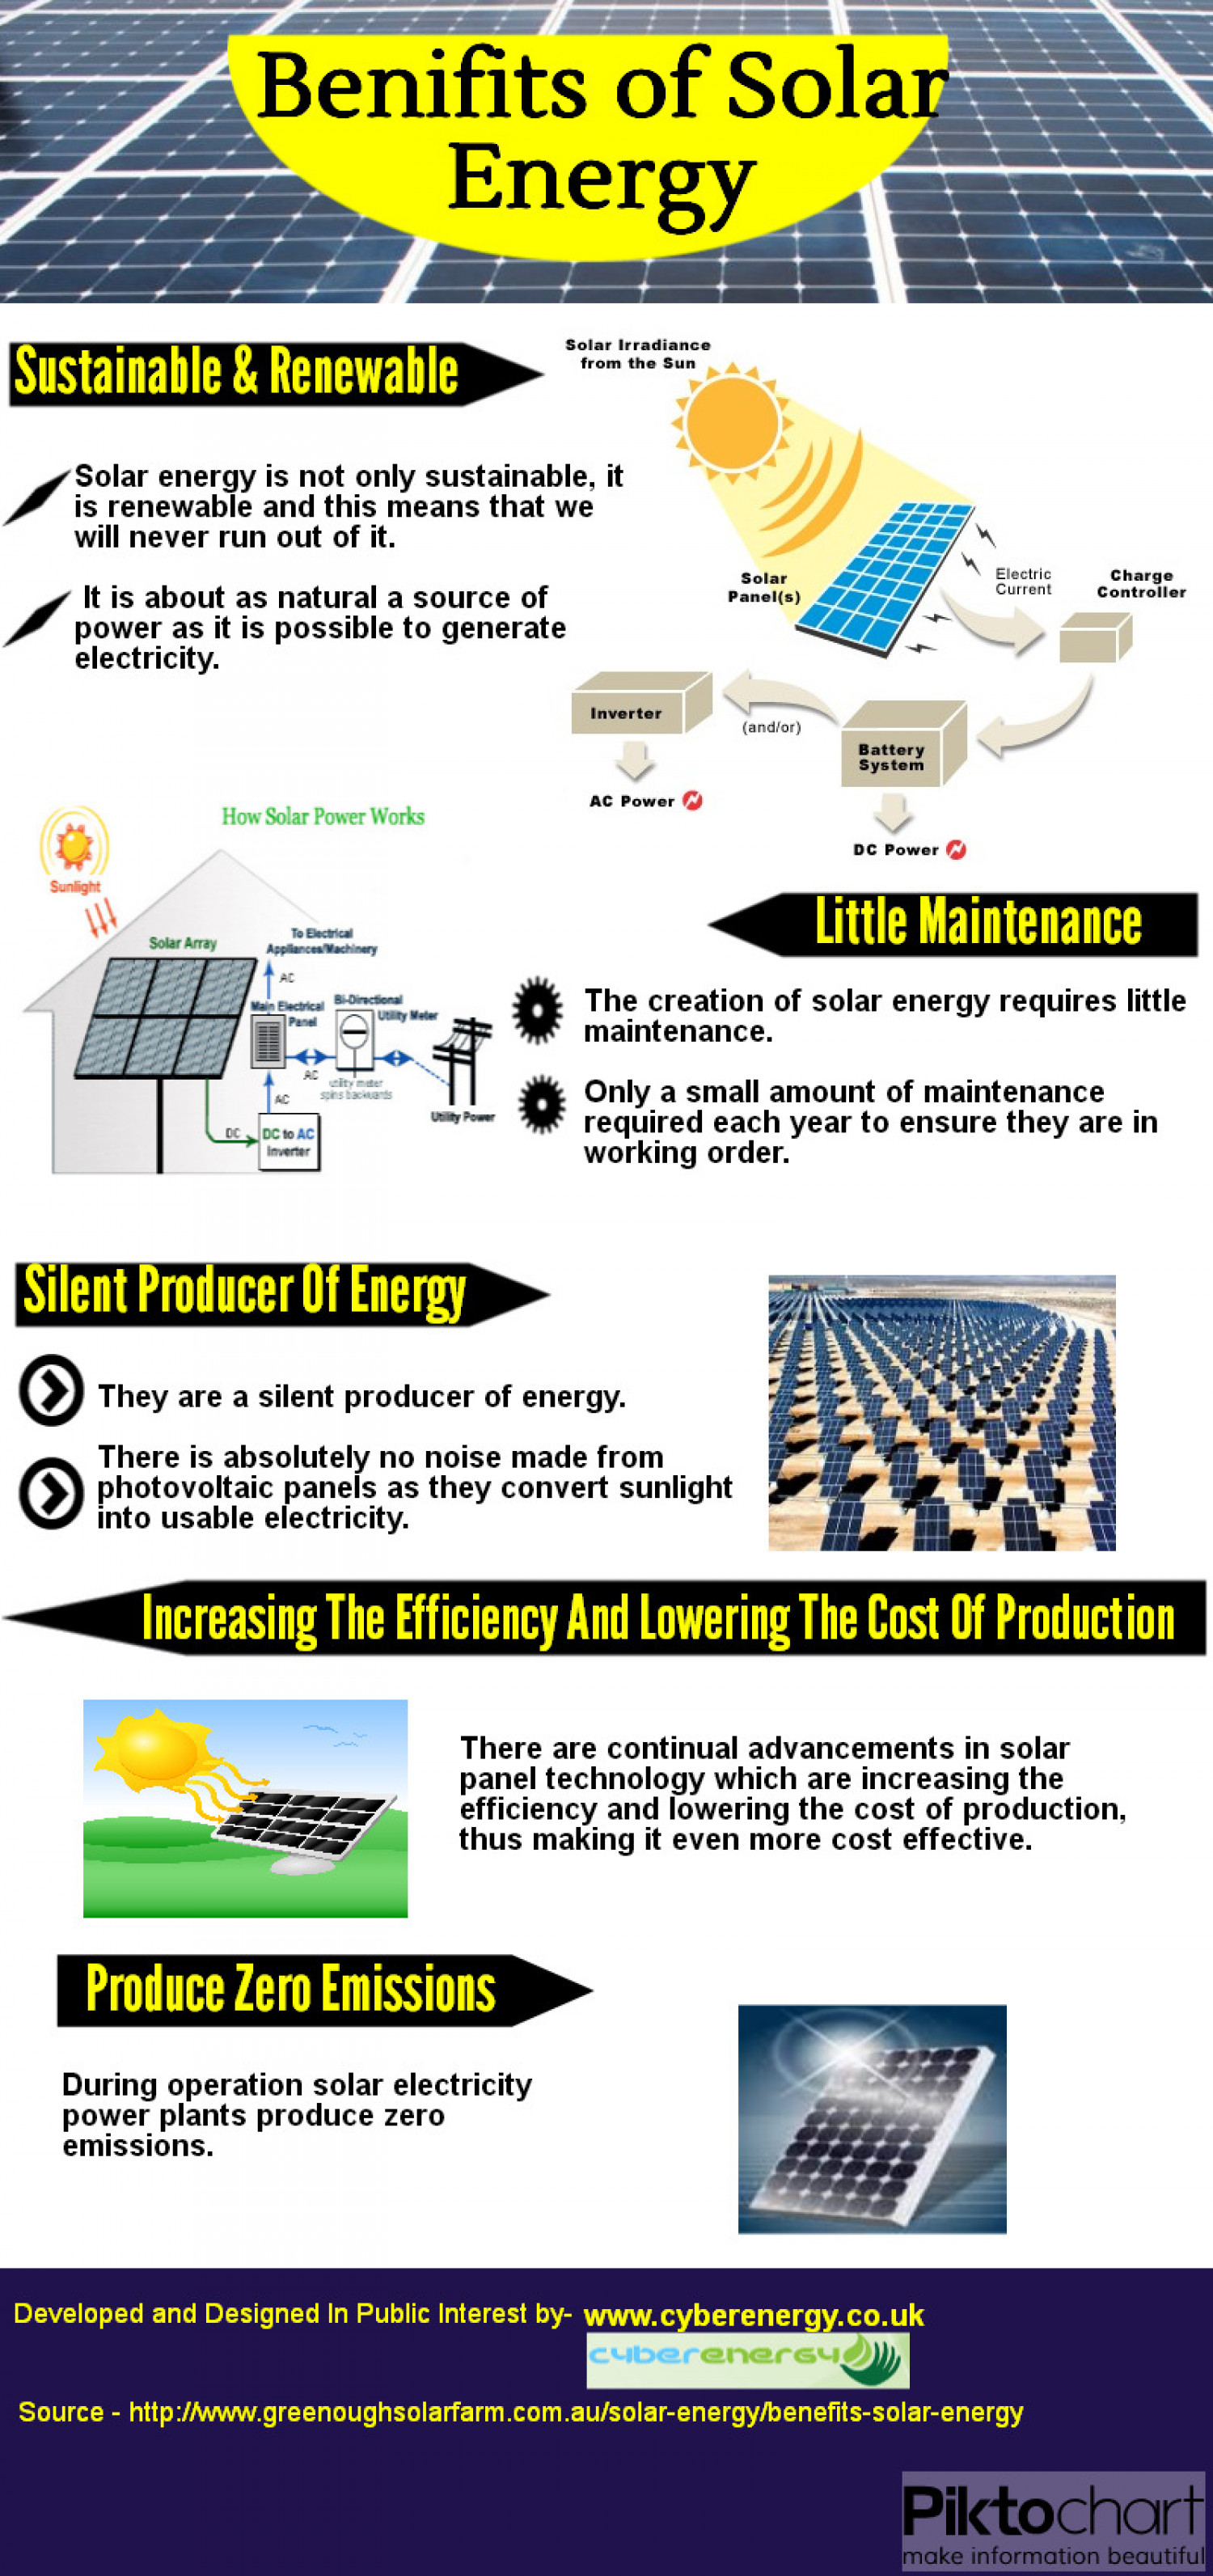 Benifits of Solar Energy Infographic